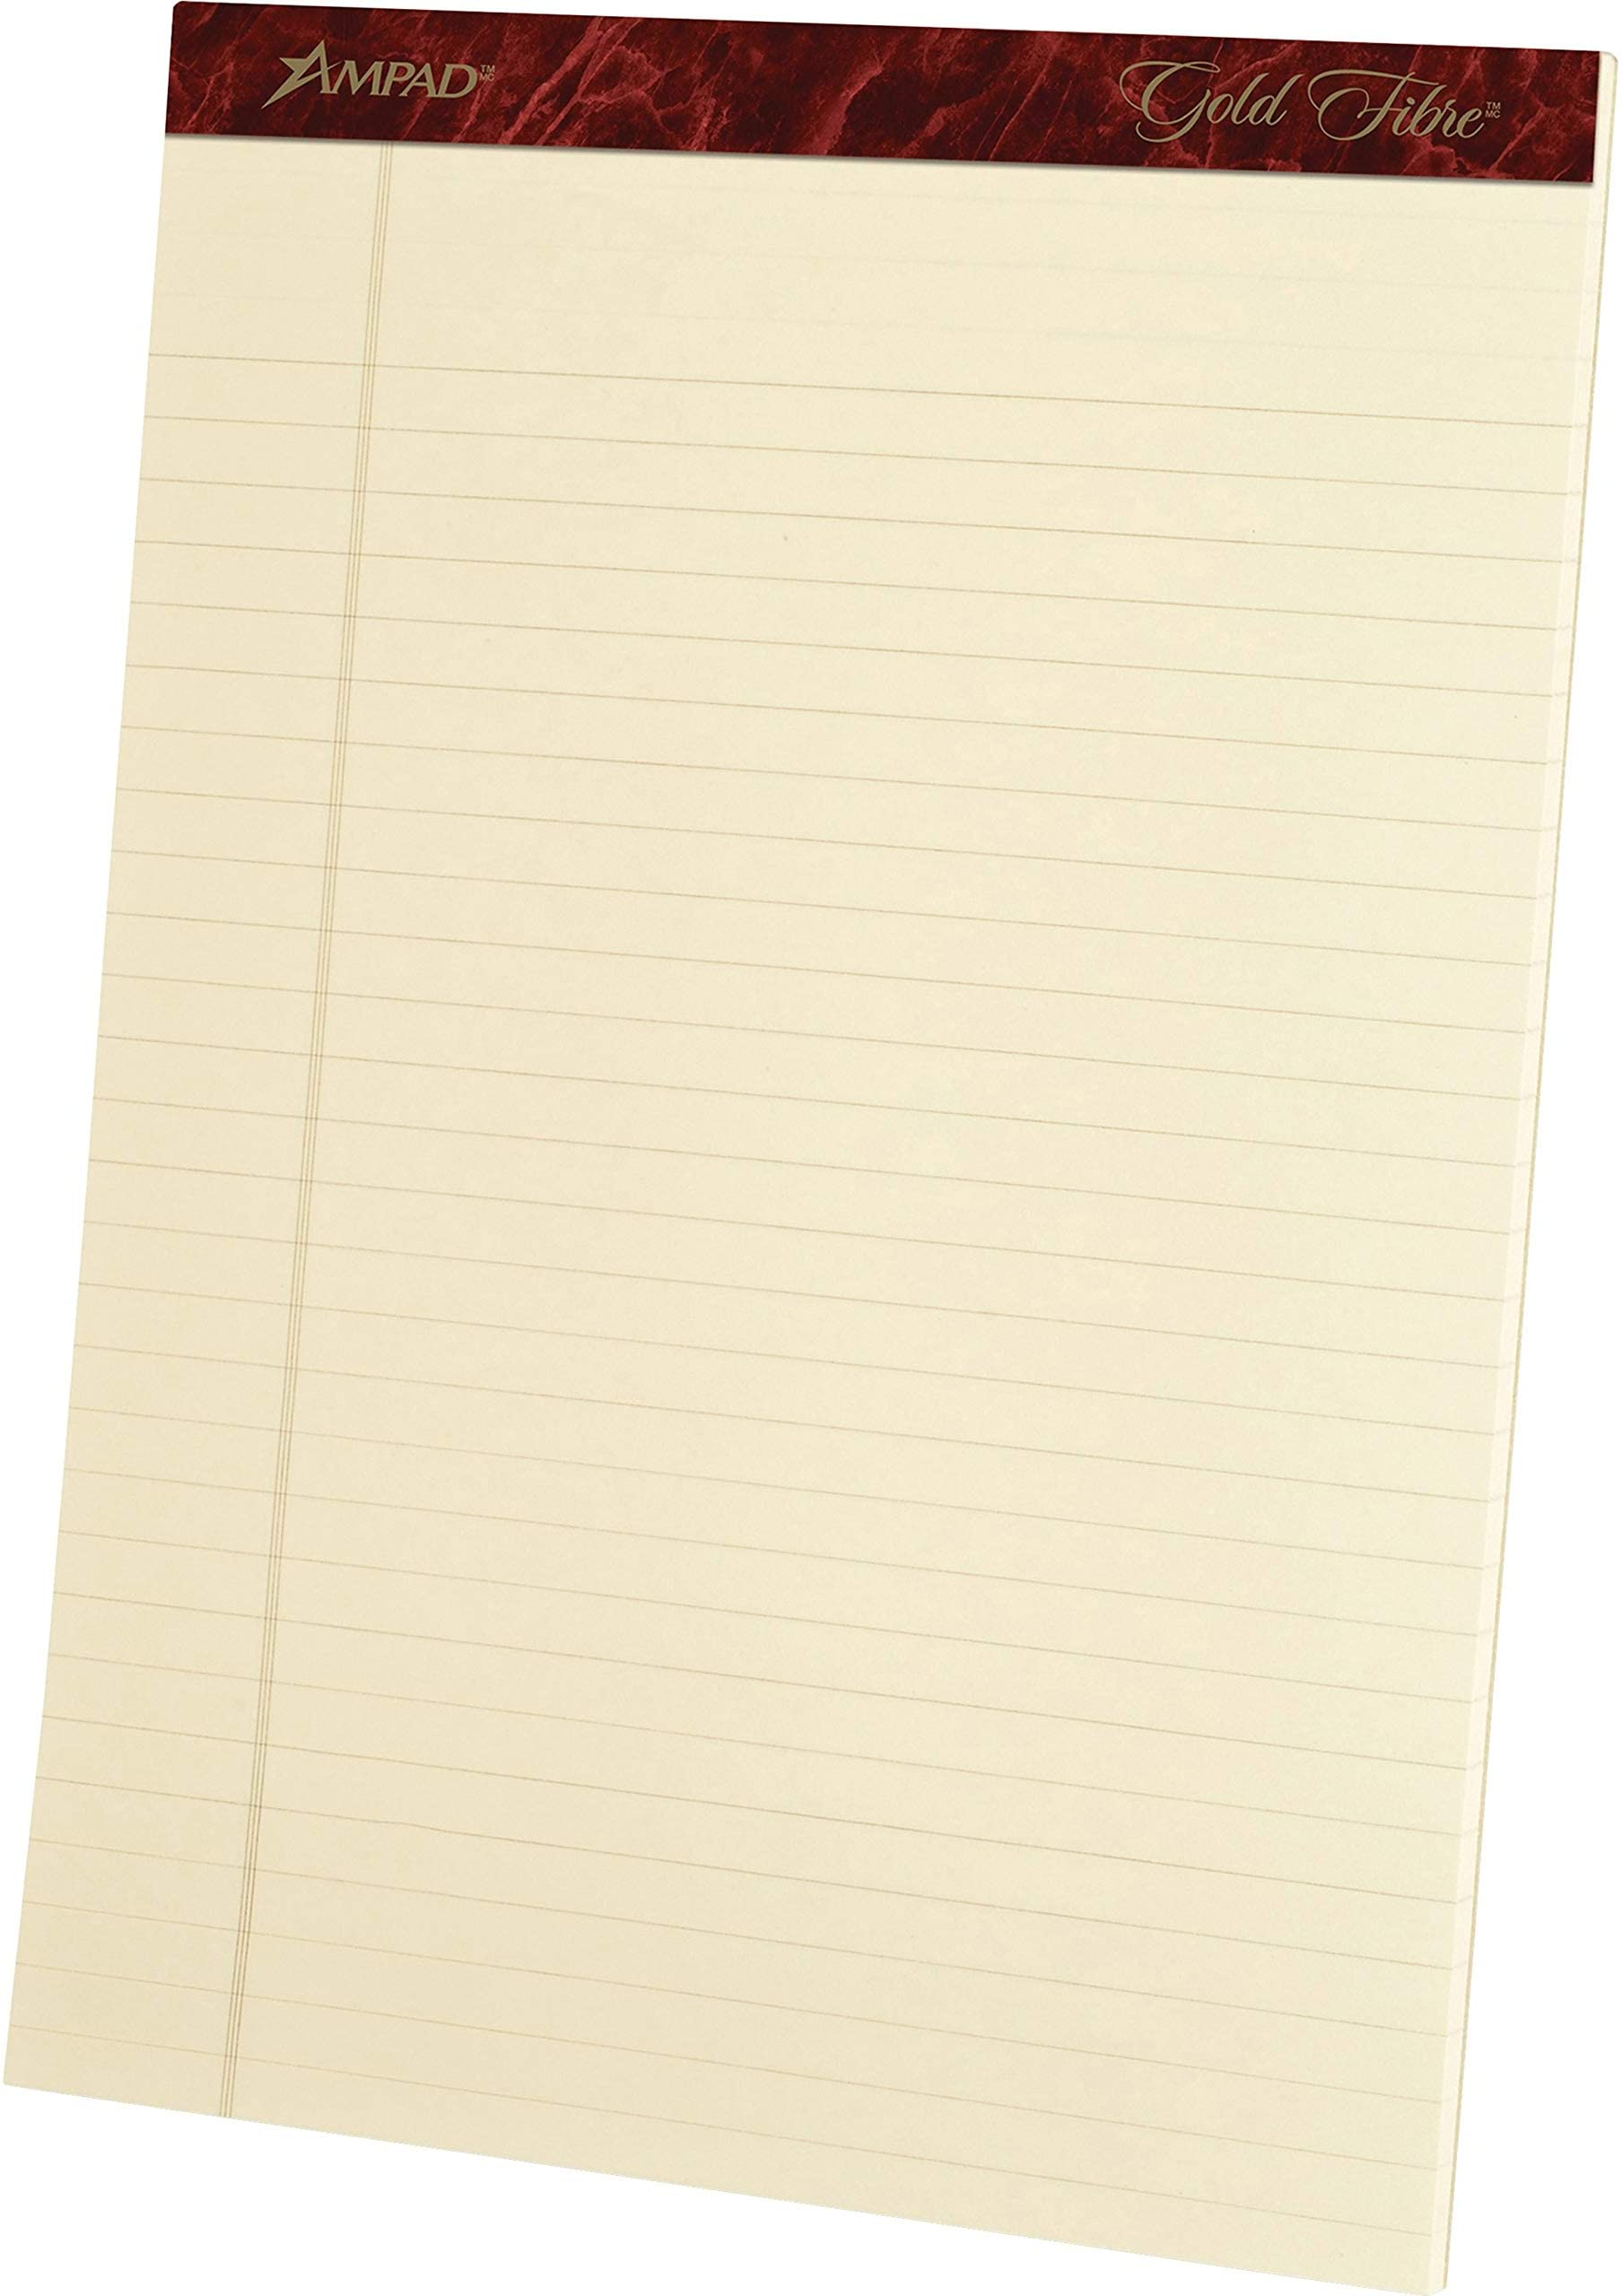 Ampad Heavyweight Writing Pad, 8.5 x 11.75 Inches, Ivory, 50-Sheet Pad (4 Pads per Pack) (20-011)